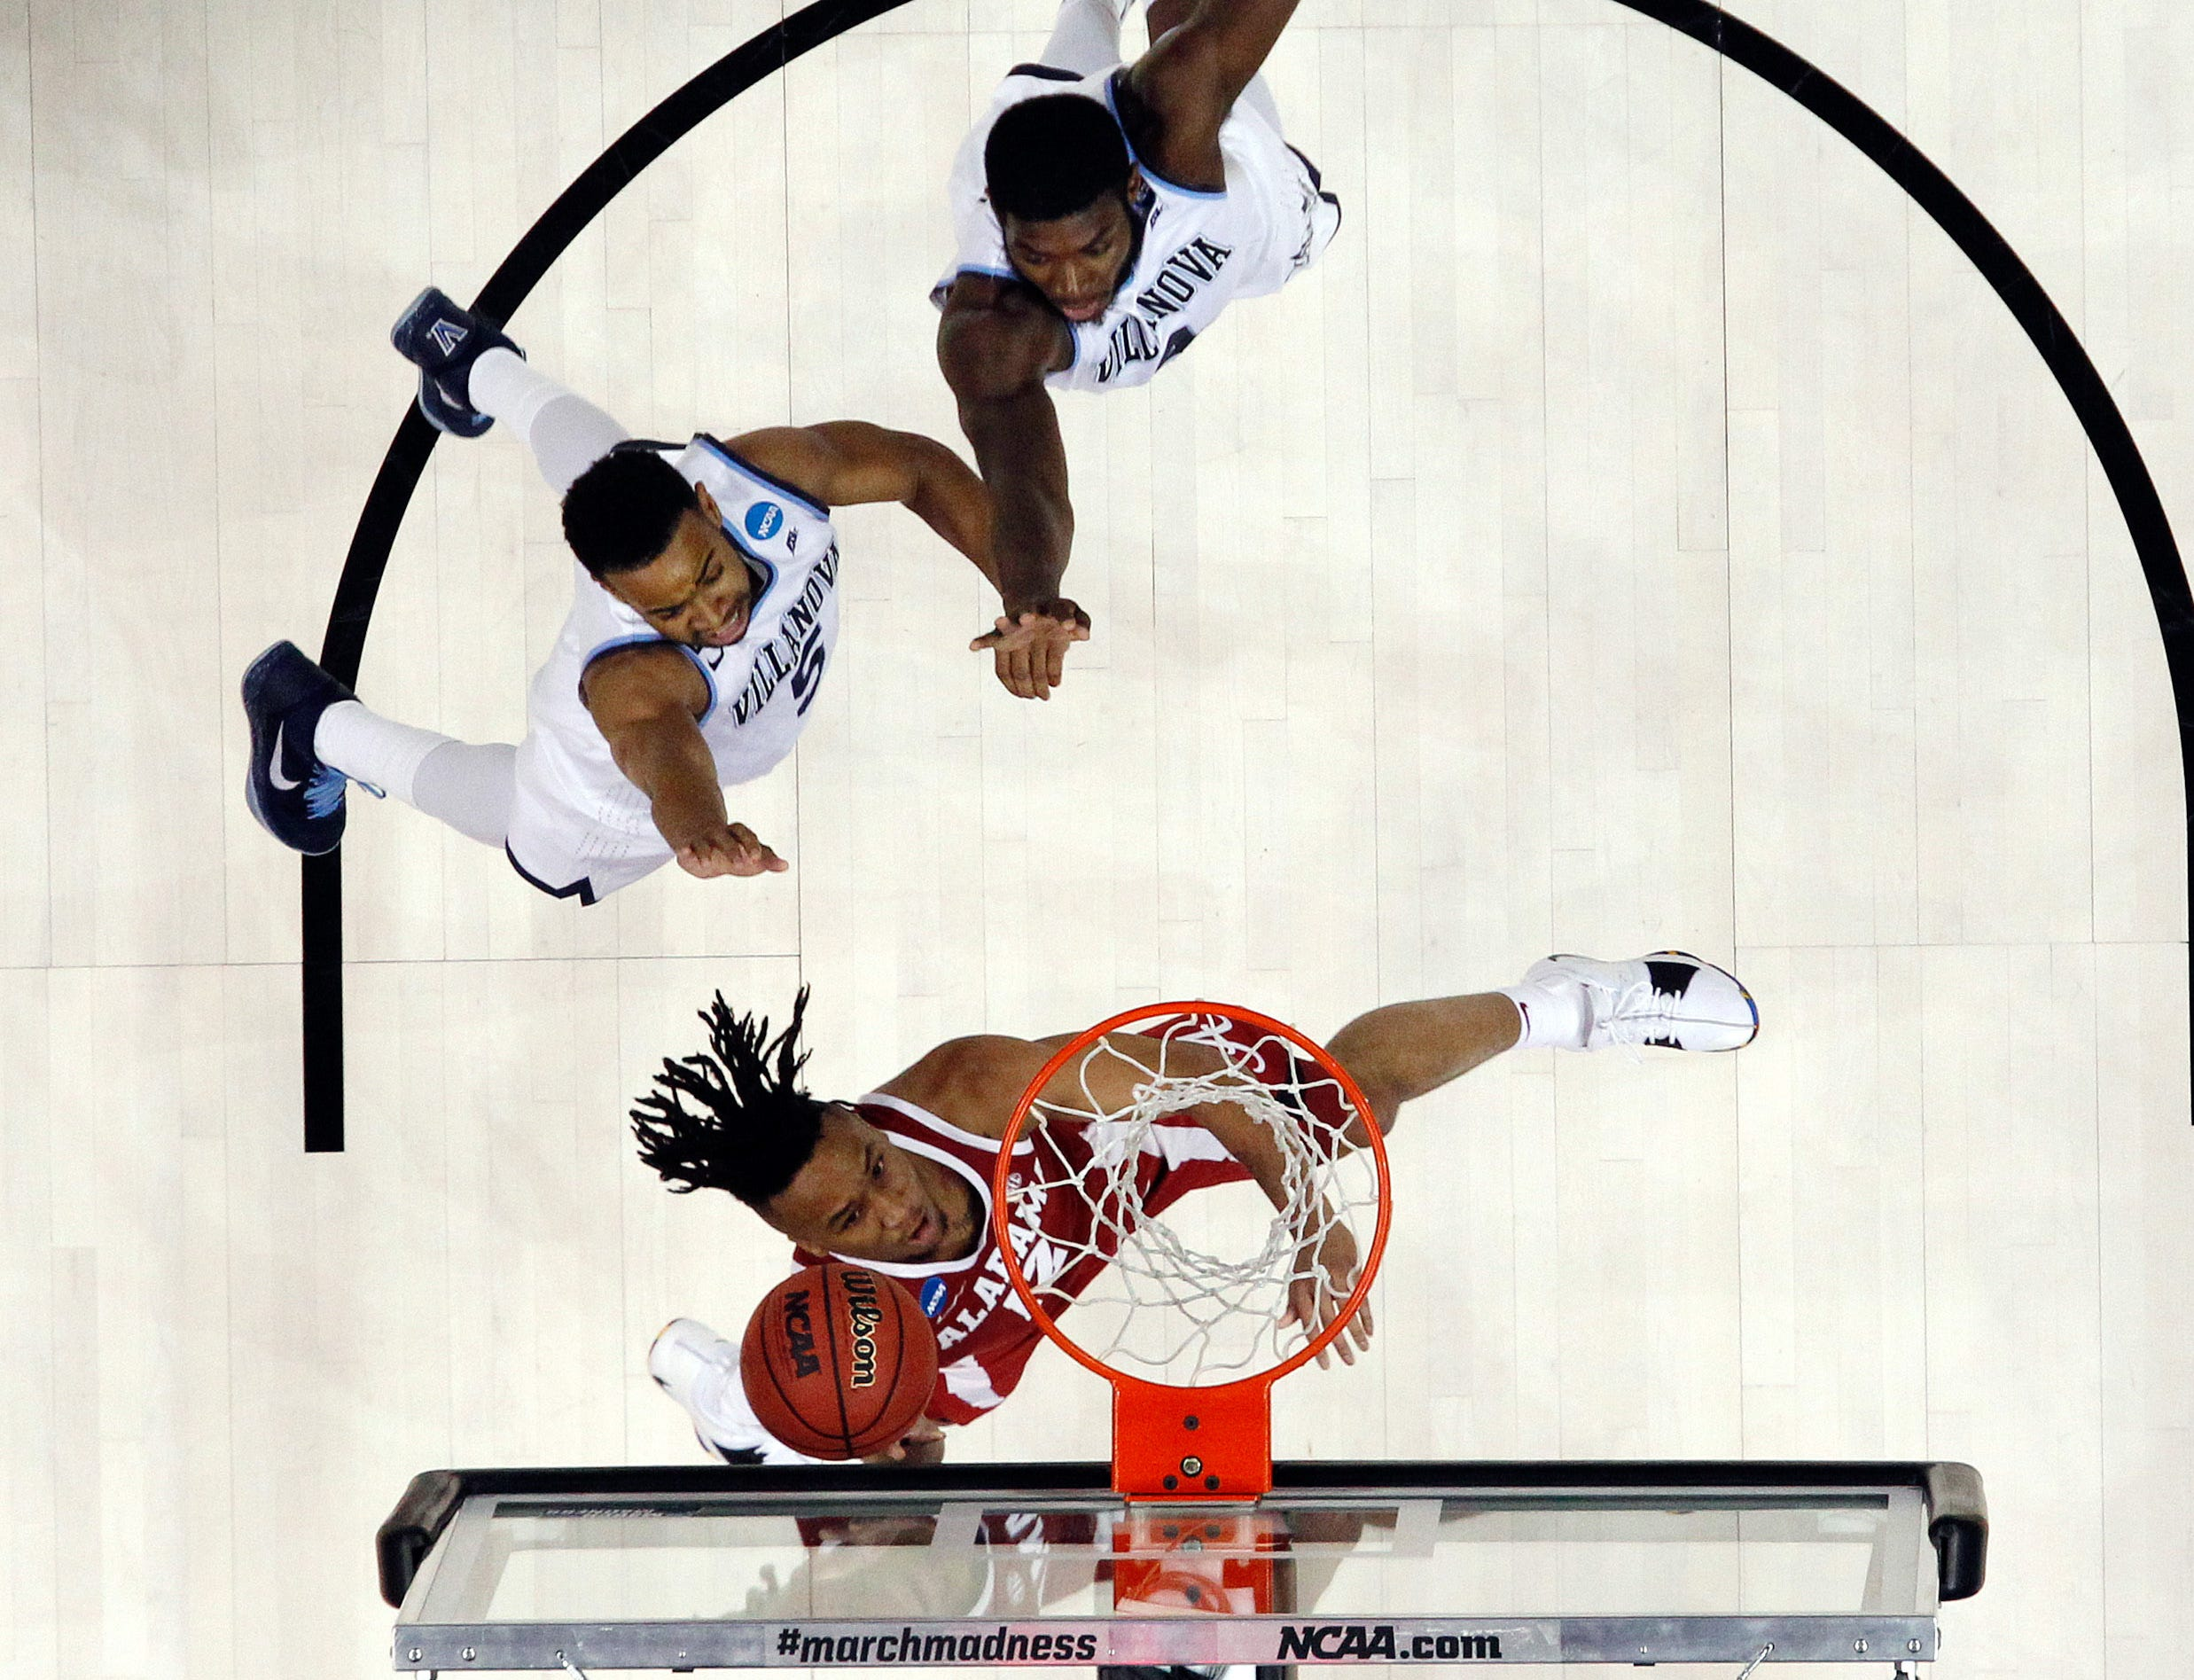 Mar 17, 2018; Pittsburgh, PA, USA;  Alabama Crimson Tide guard Dazon Ingram (12) goes to the basket past Villanova Wildcats guard Phil Booth (5) and forward Eric Paschall (4) during the first half in the second round of the 2018 NCAA Tournament at PPG Paints Arena. Villanova won 81-58. Mandatory Credit: Charles LeClaire-USA TODAY Sports